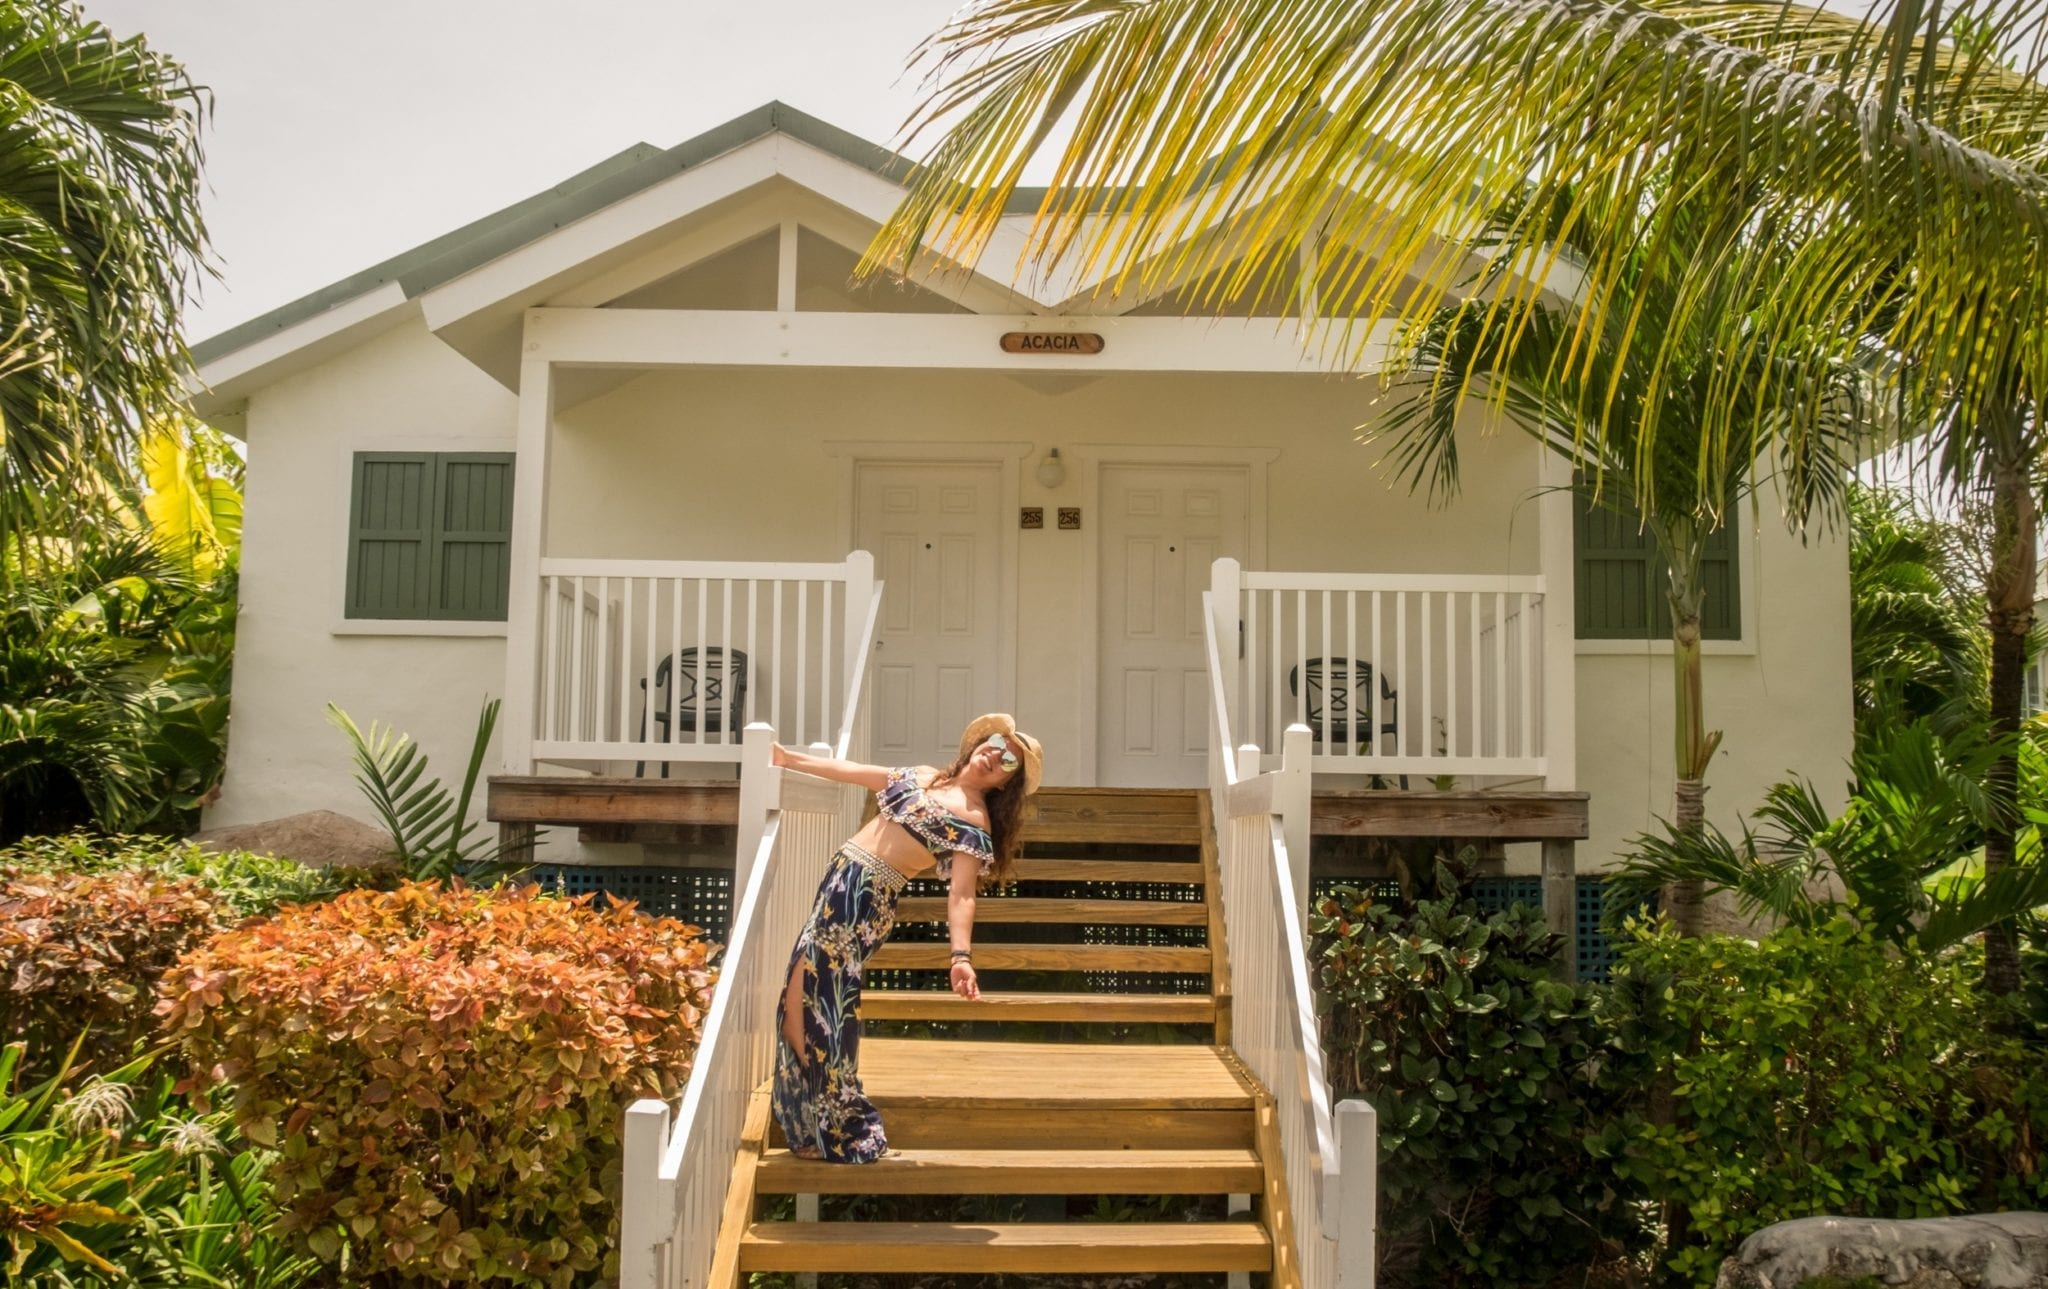 Kate posing in front of a cottage on the stairs leading up. The cottage has two doors in front and several palm trees around. Kate is holding onto the railing and arching her back so she's falling backward. She wears a straw hat, aviators, and a tropical-patterned bathing suit top that matches her genie-style pants.